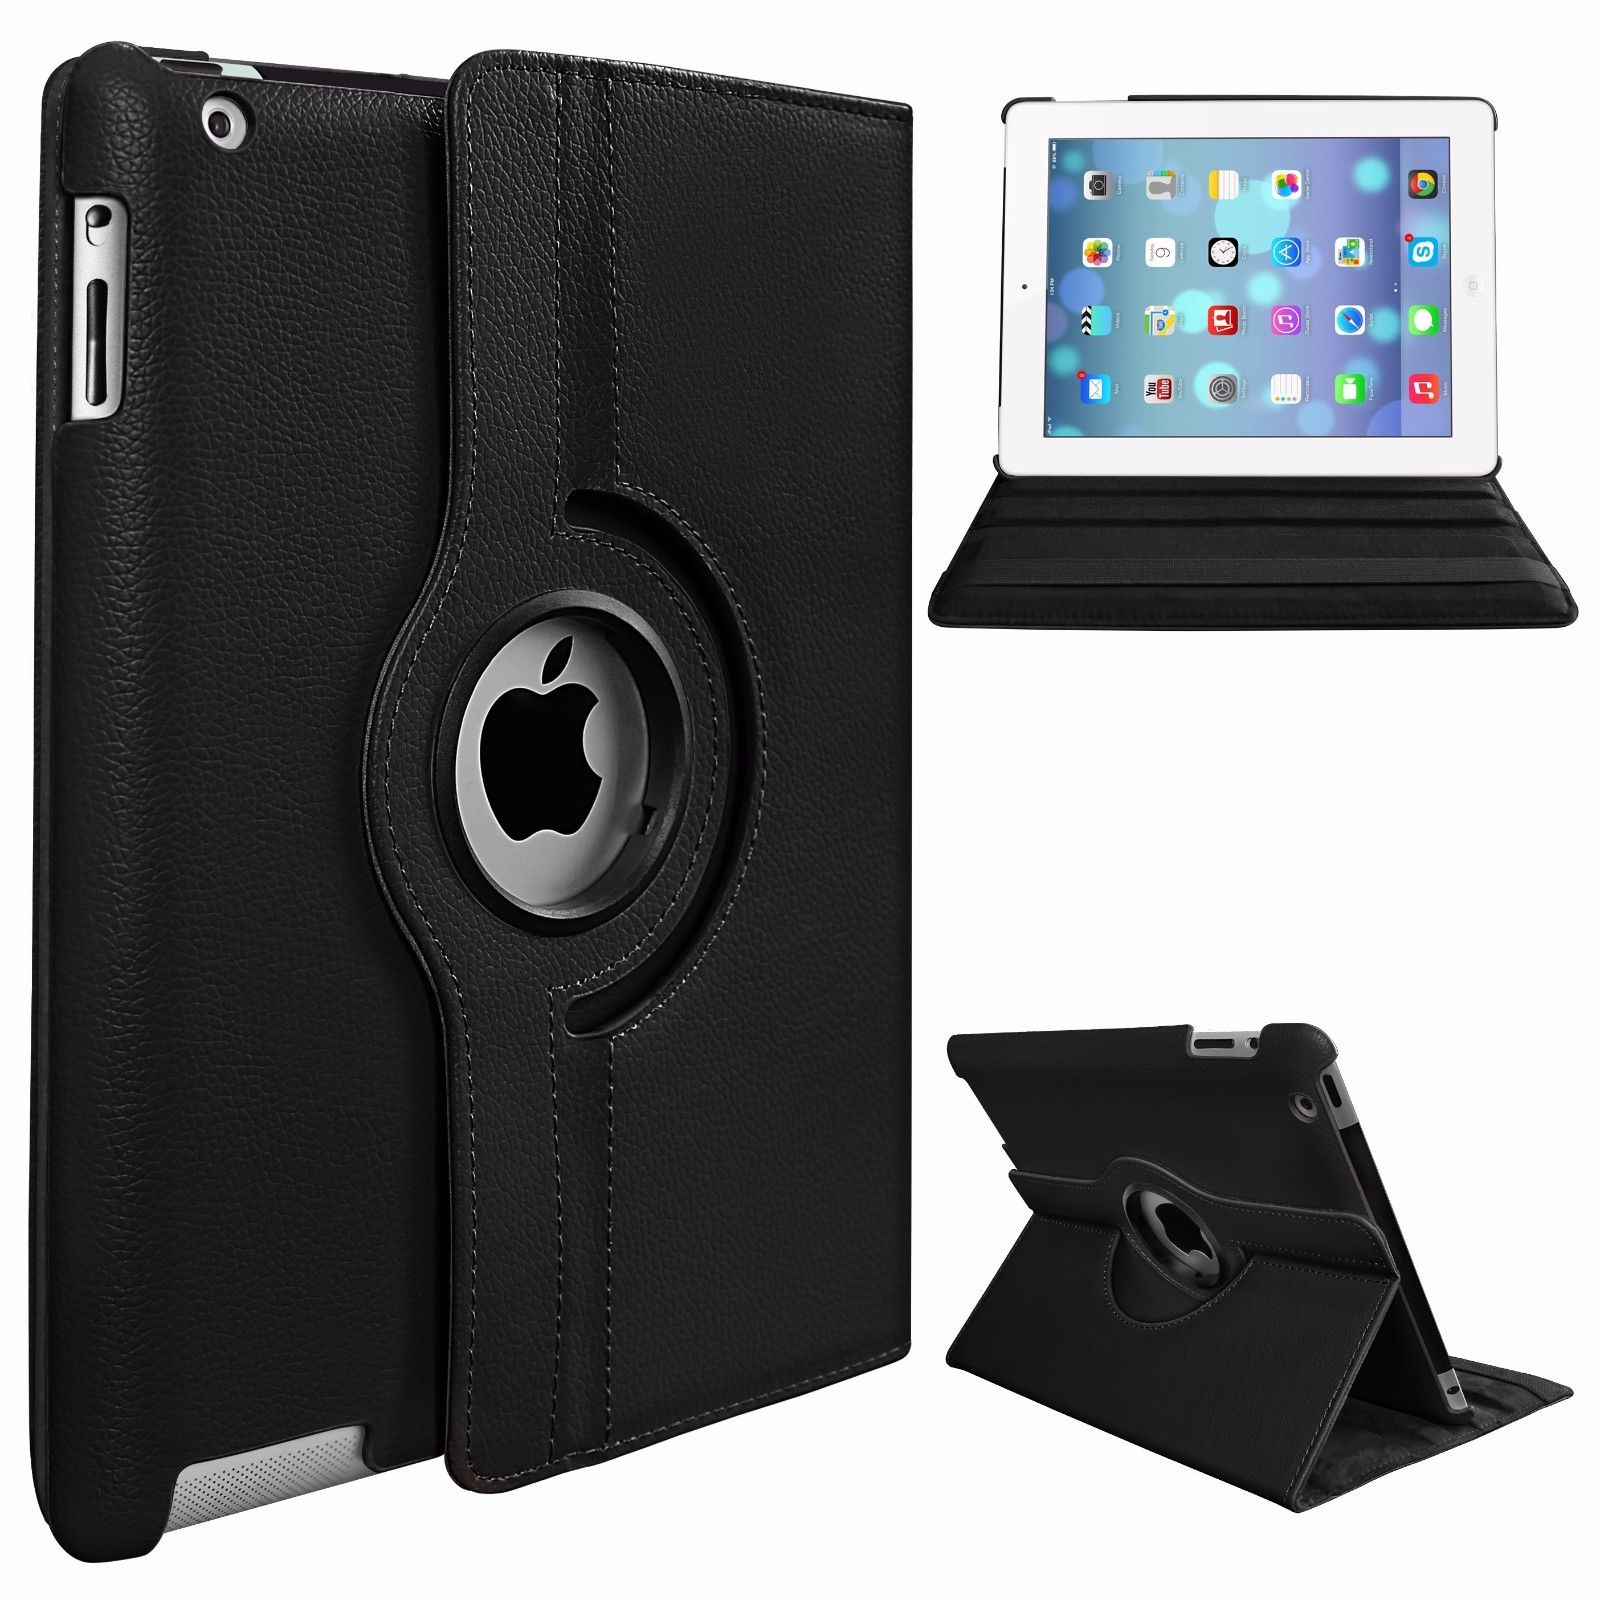 PU Leather Smart Stand Flip Case Cover for Apple iPad mini 4 360 Rotation Tablet Full Protector Case